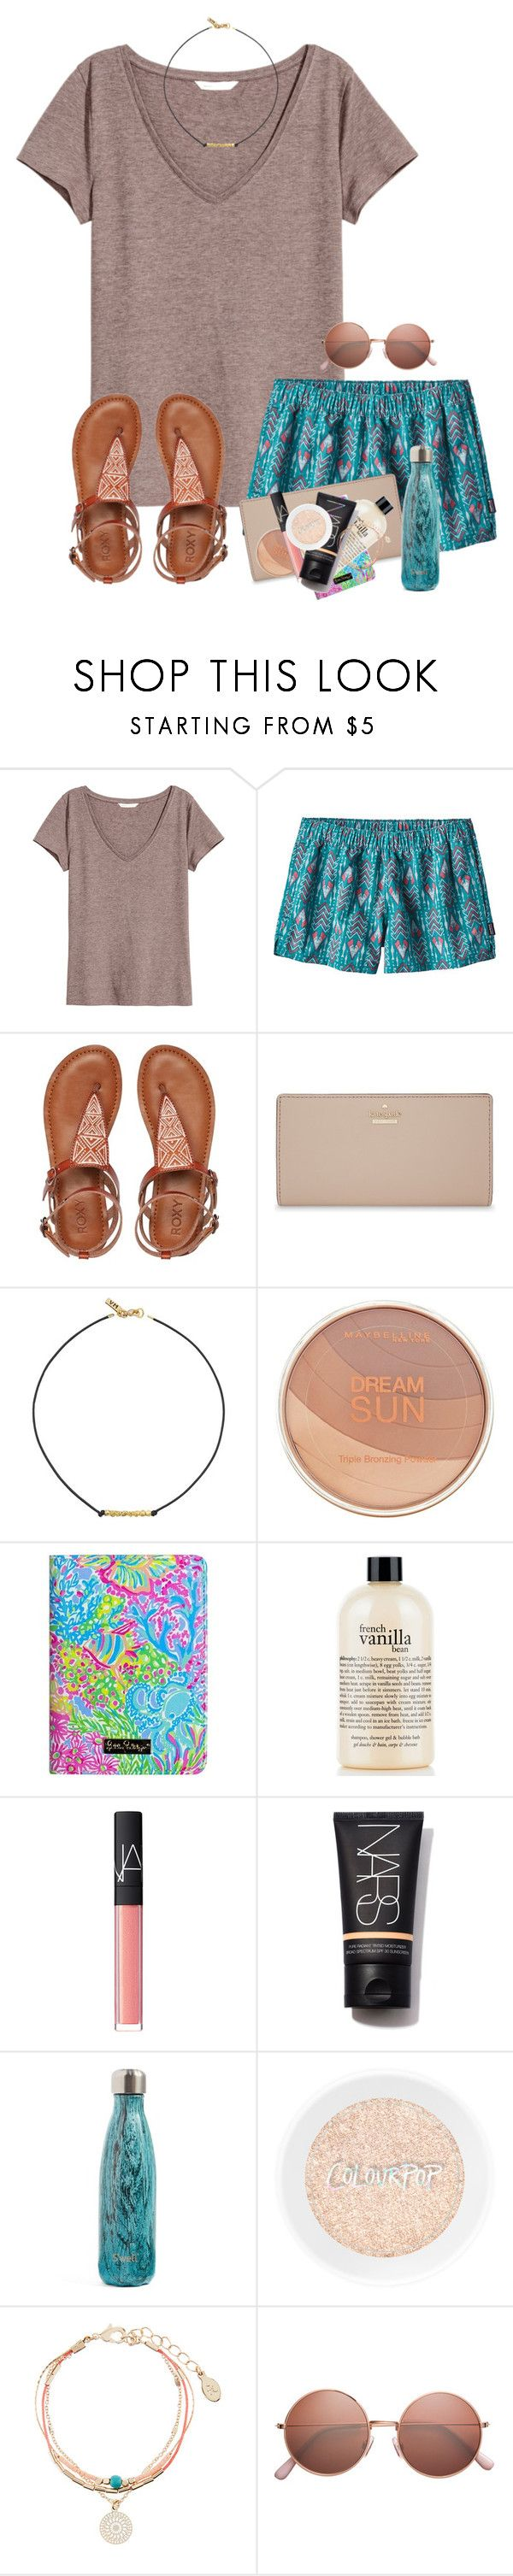 """""""Leaving for lake house tomorrow!"""" by zoejm ❤ liked on Polyvore featuring H&M, Patagonia, Roxy, Kate Spade, Vanessa Mooney, Maybelline, Lilly Pulitzer, philosophy, NARS Cosmetics and S'well"""